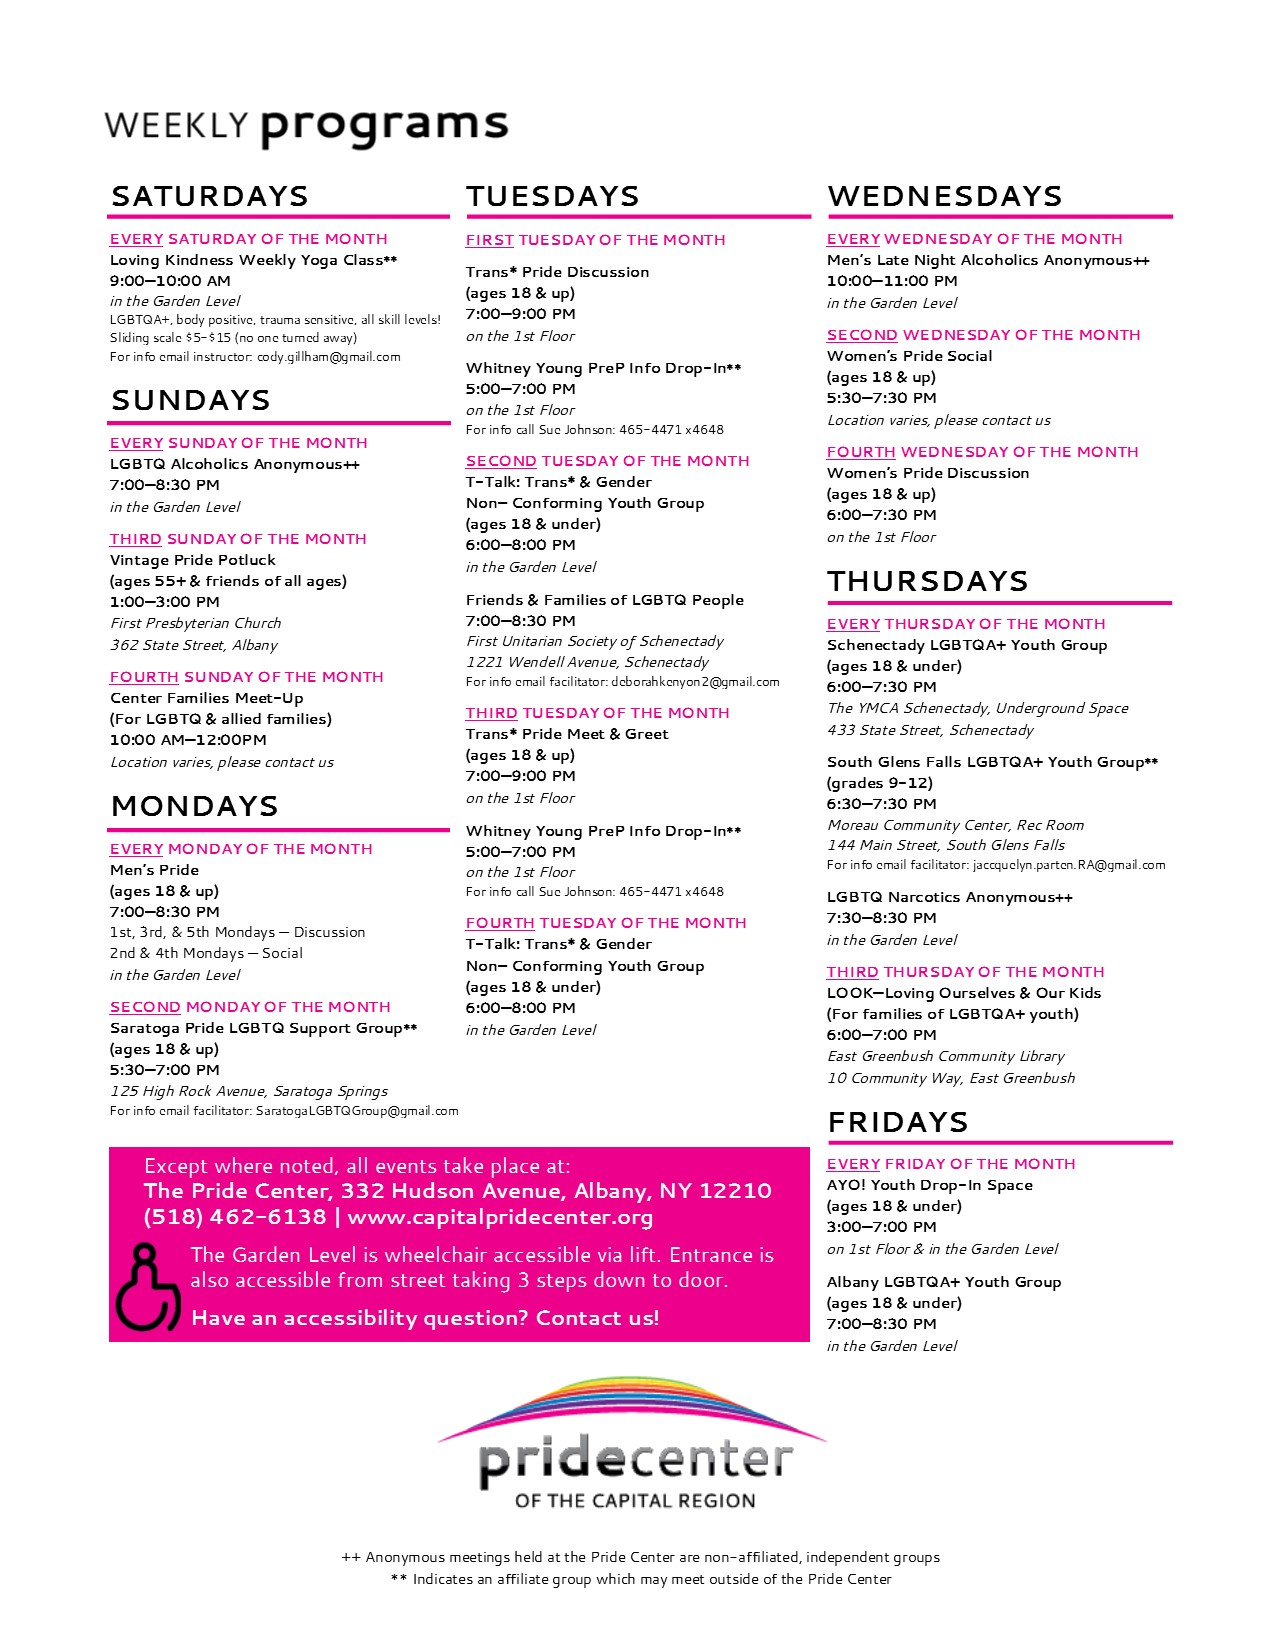 Programs and Services One Sheet April 2017 EDITABLE